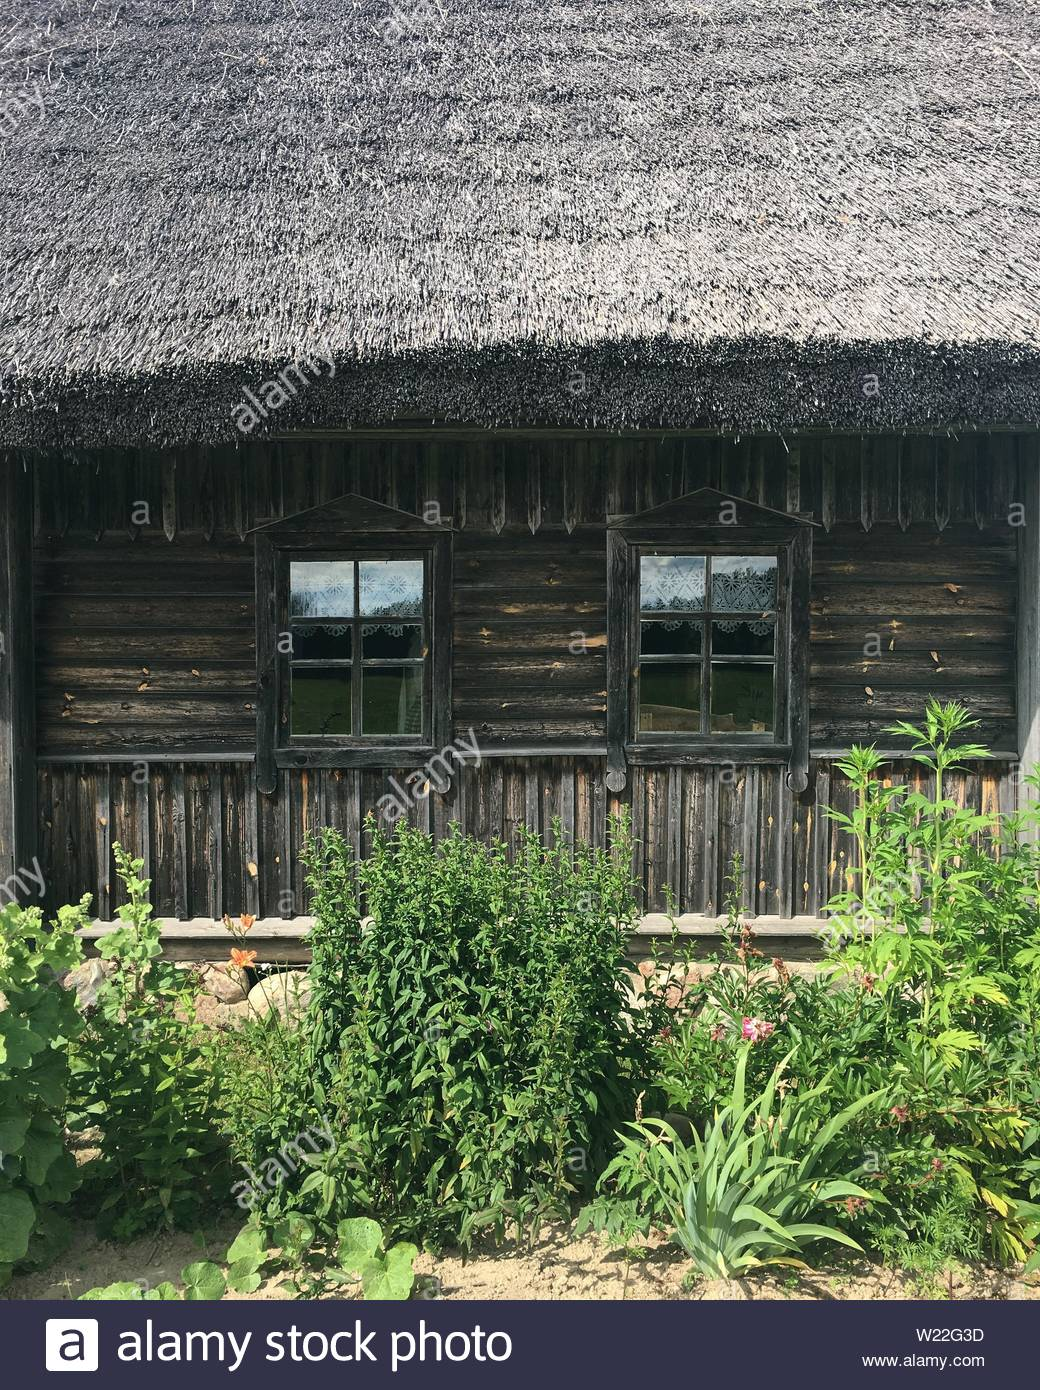 The side of an old wooden house with a straw roof - Stock Image